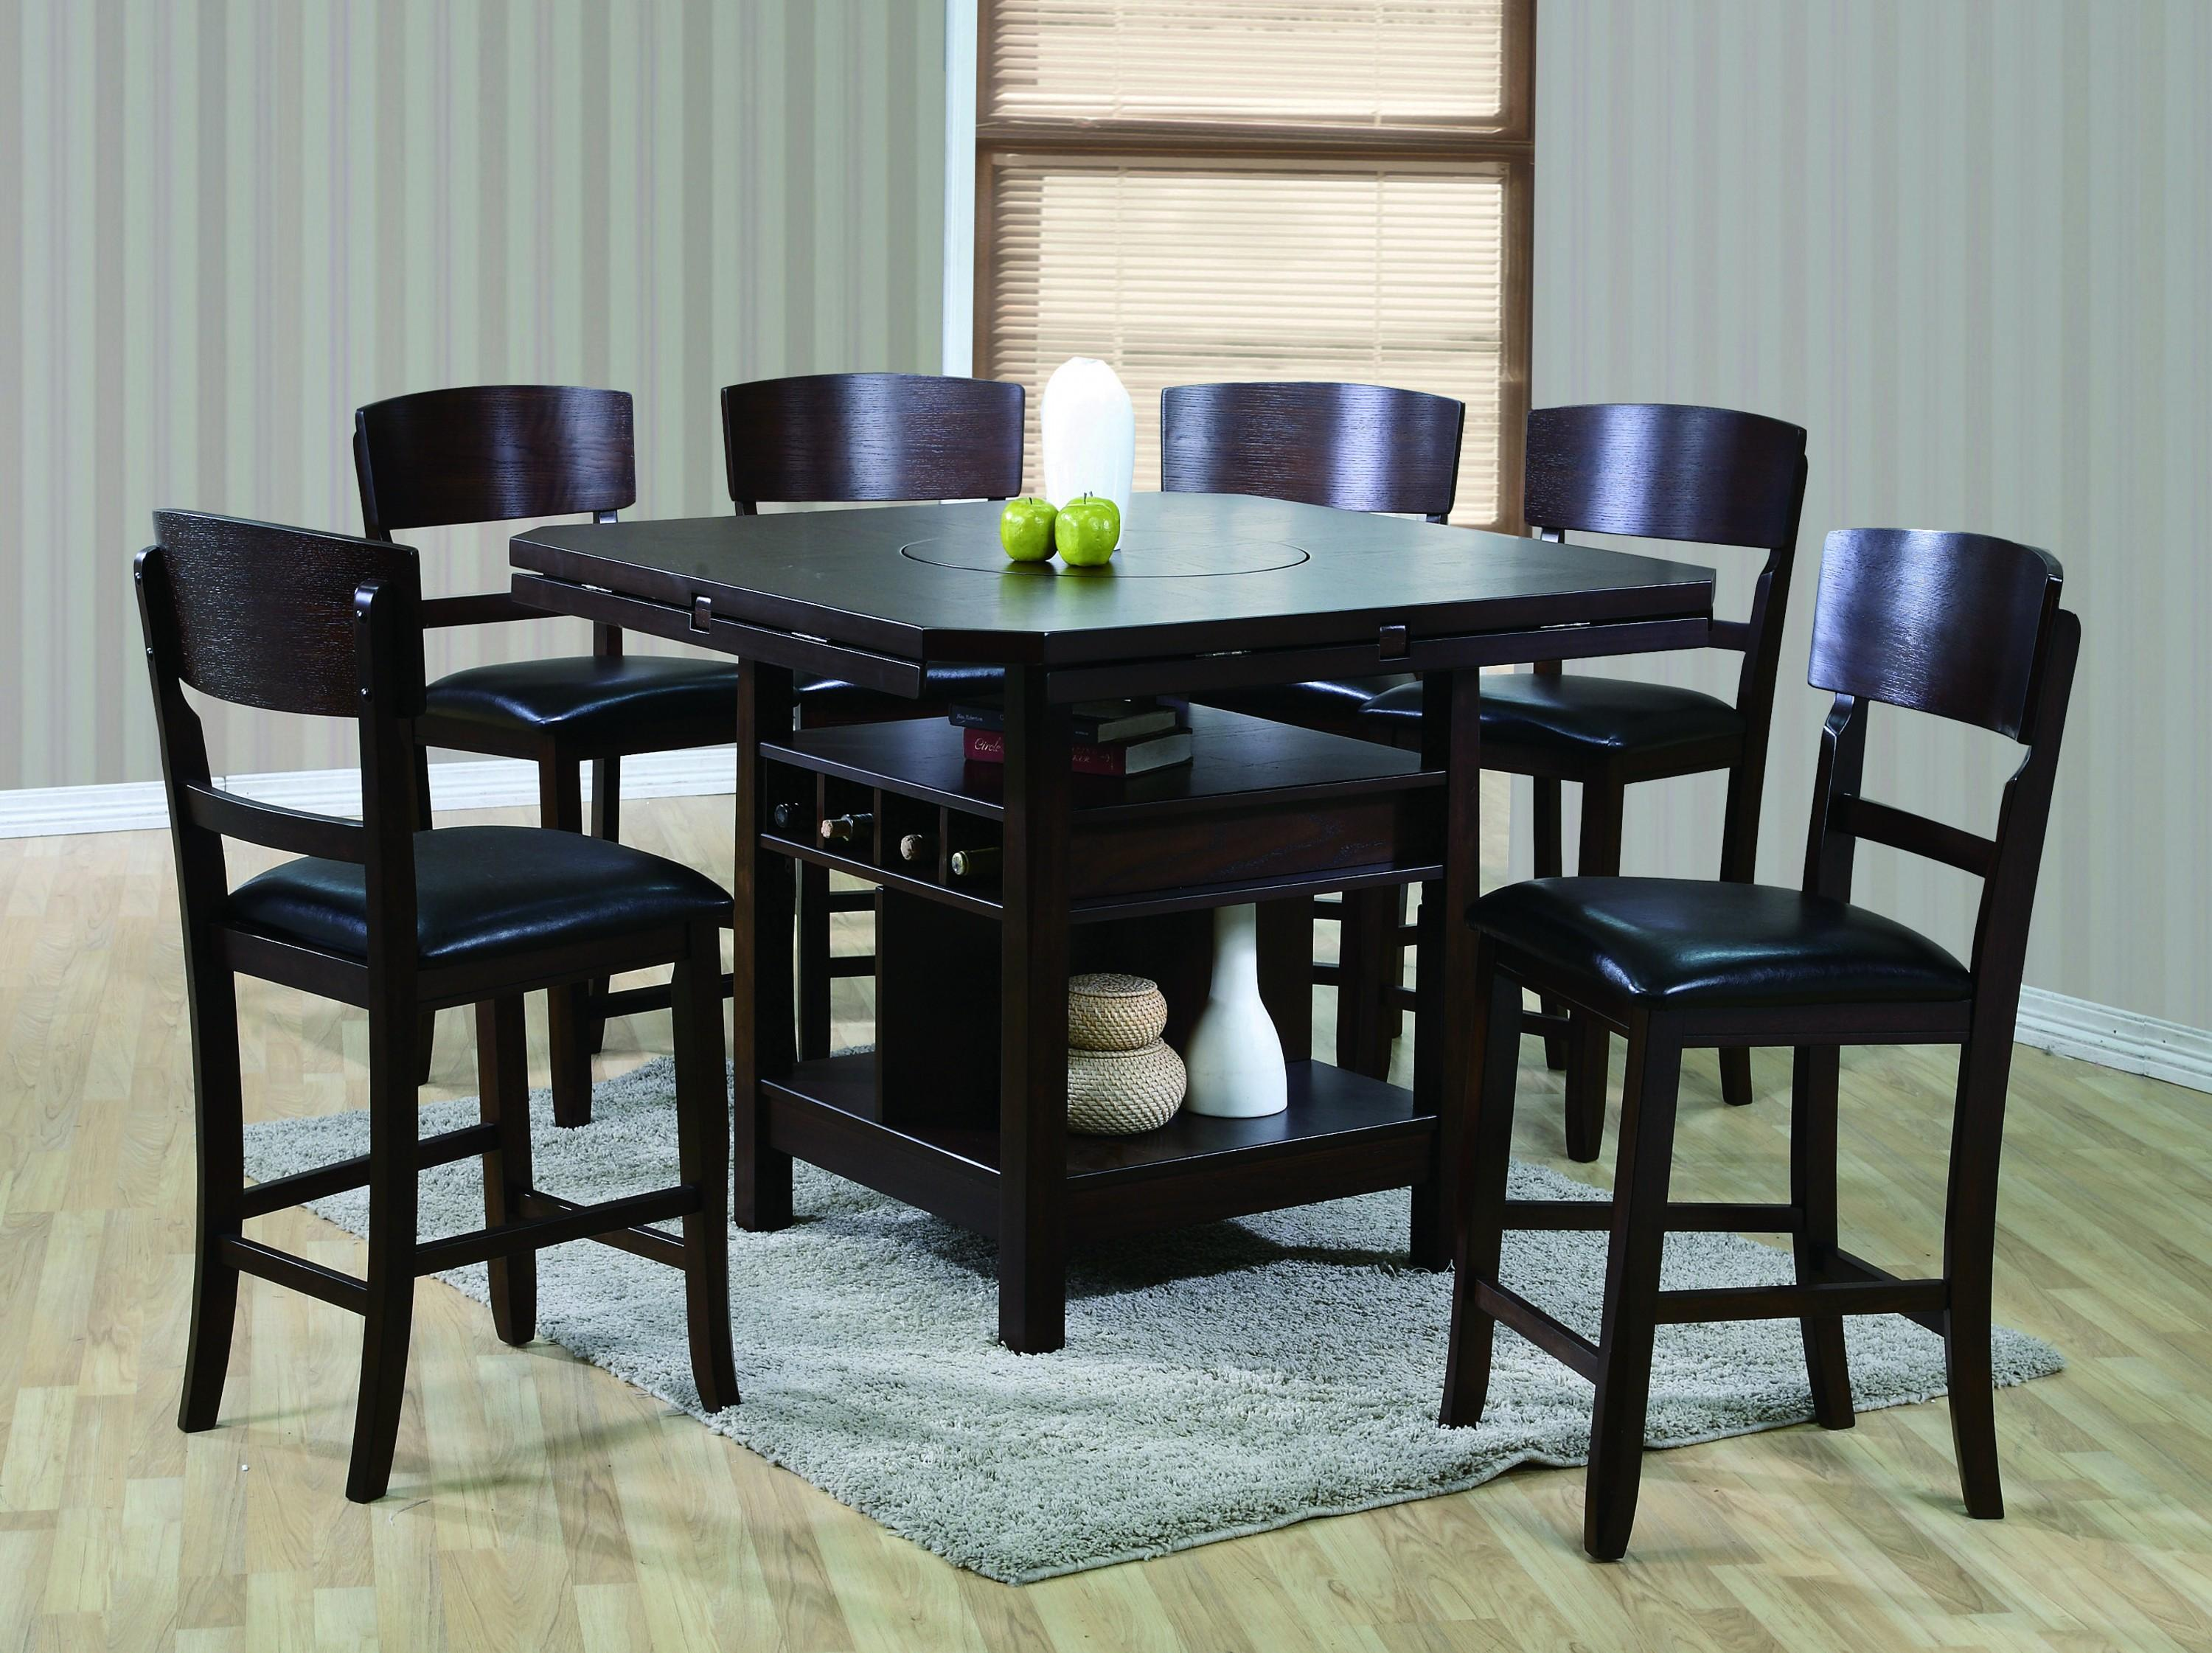 cm conner 5 piece counter height dining set furniture warehouse pub table and stool set